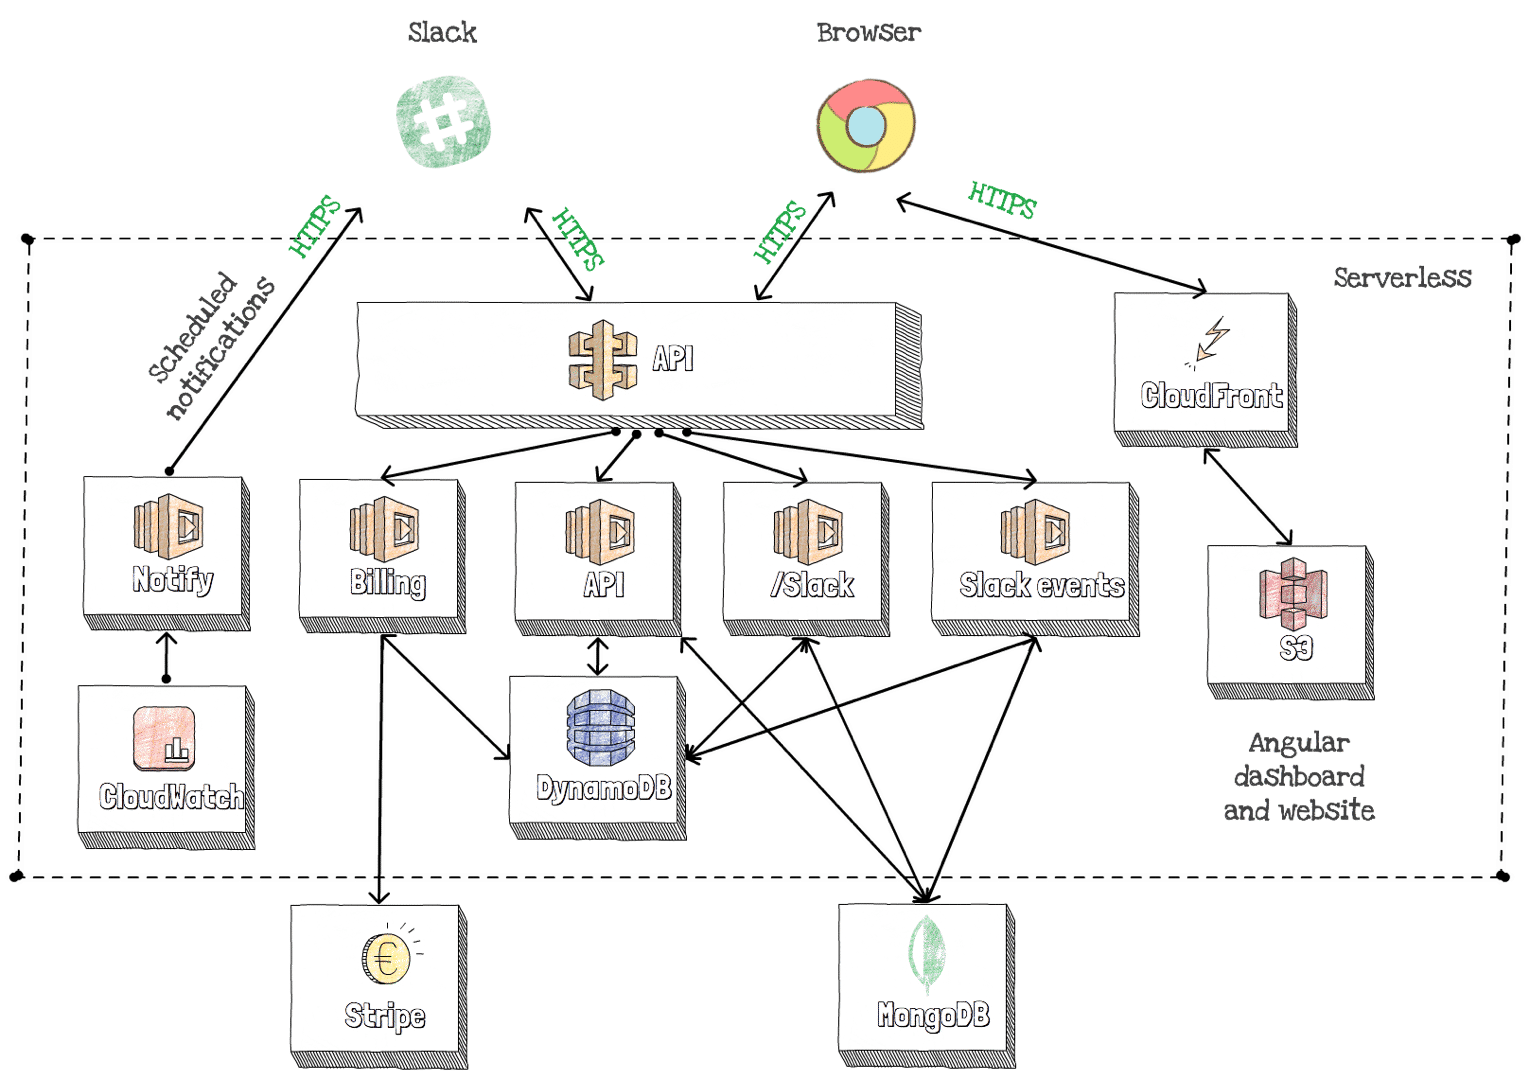 Vacation Tracker Architecture Diagram - Vacation Tracker